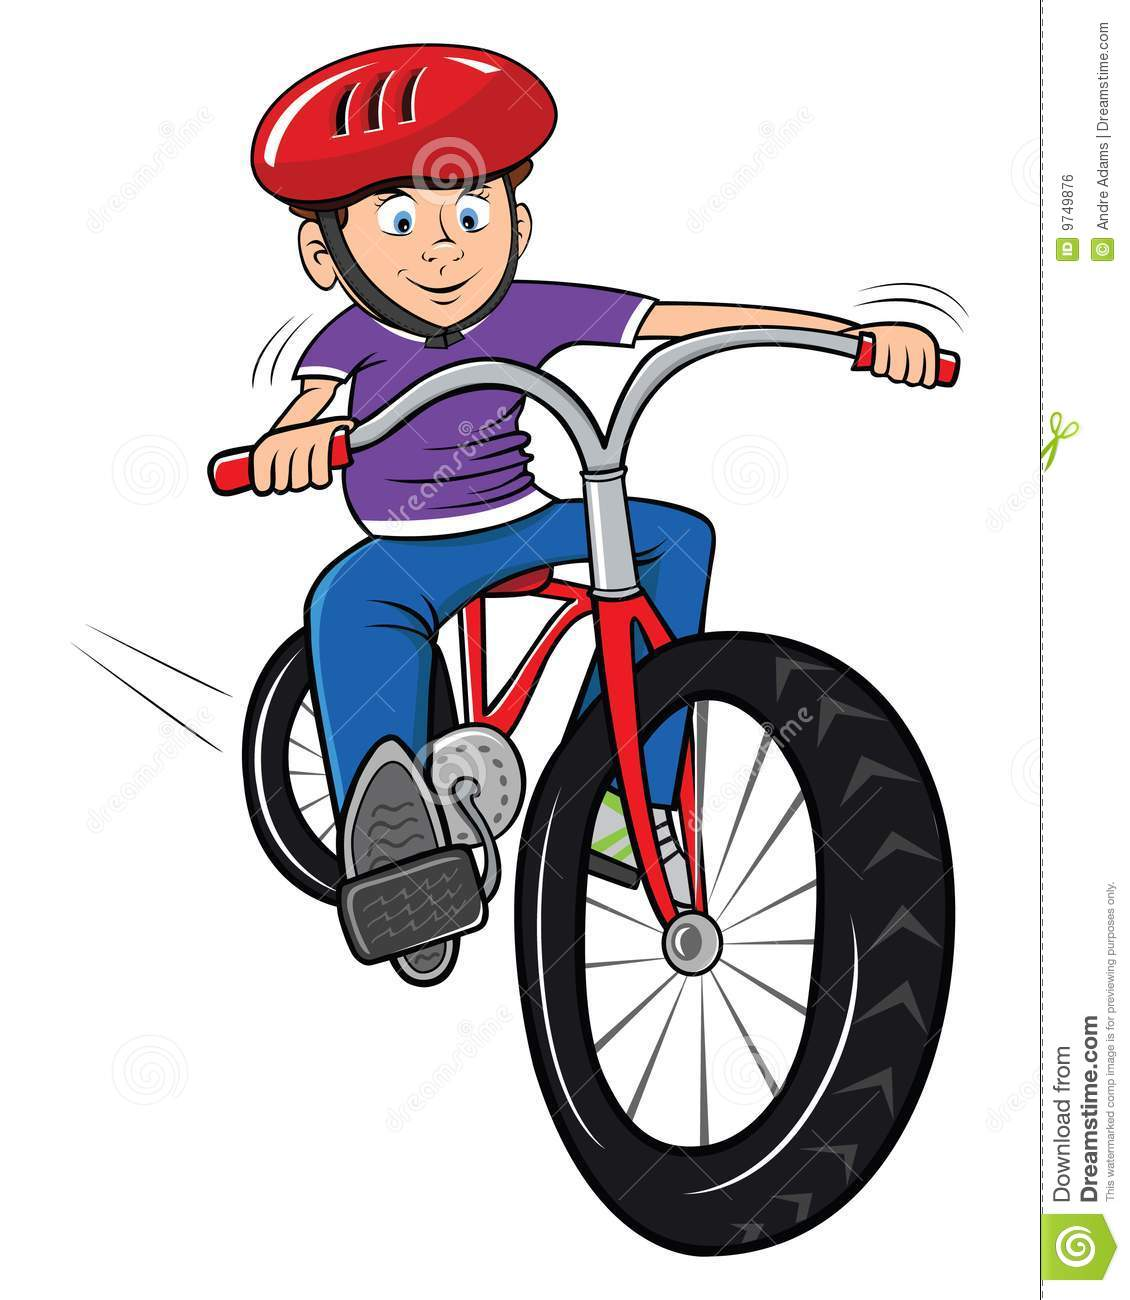 1130x1300 People Riding Bikes Clipart Riding Bike